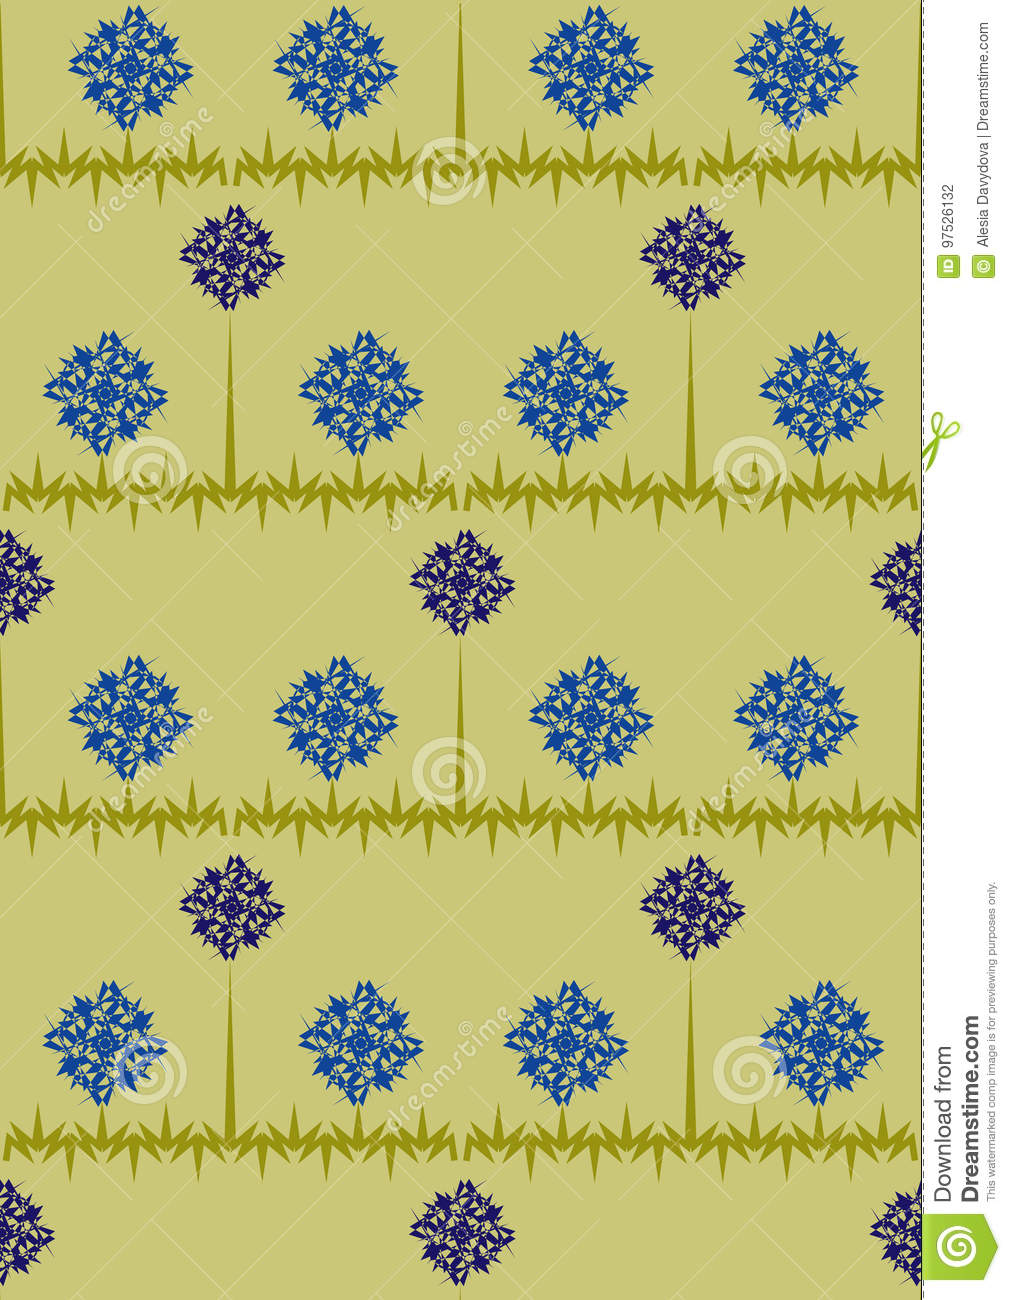 Seamless pattern with small daisies and cornflowers on a Blue background with strips.Blue and white flowers.Summer illustr